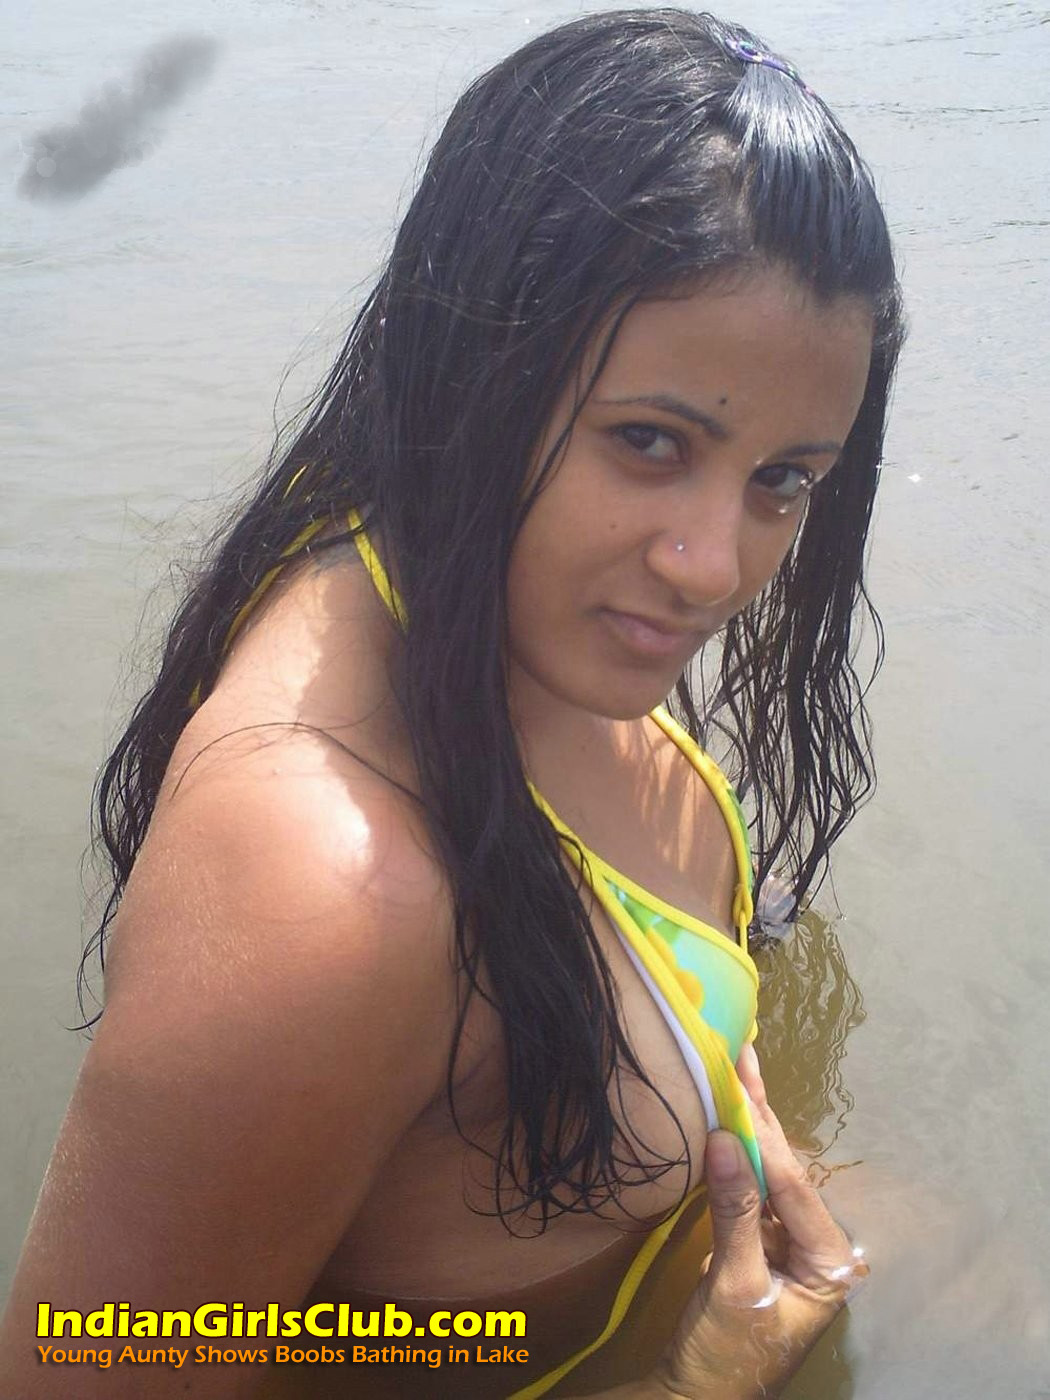 Tamil hot aunty sex nude